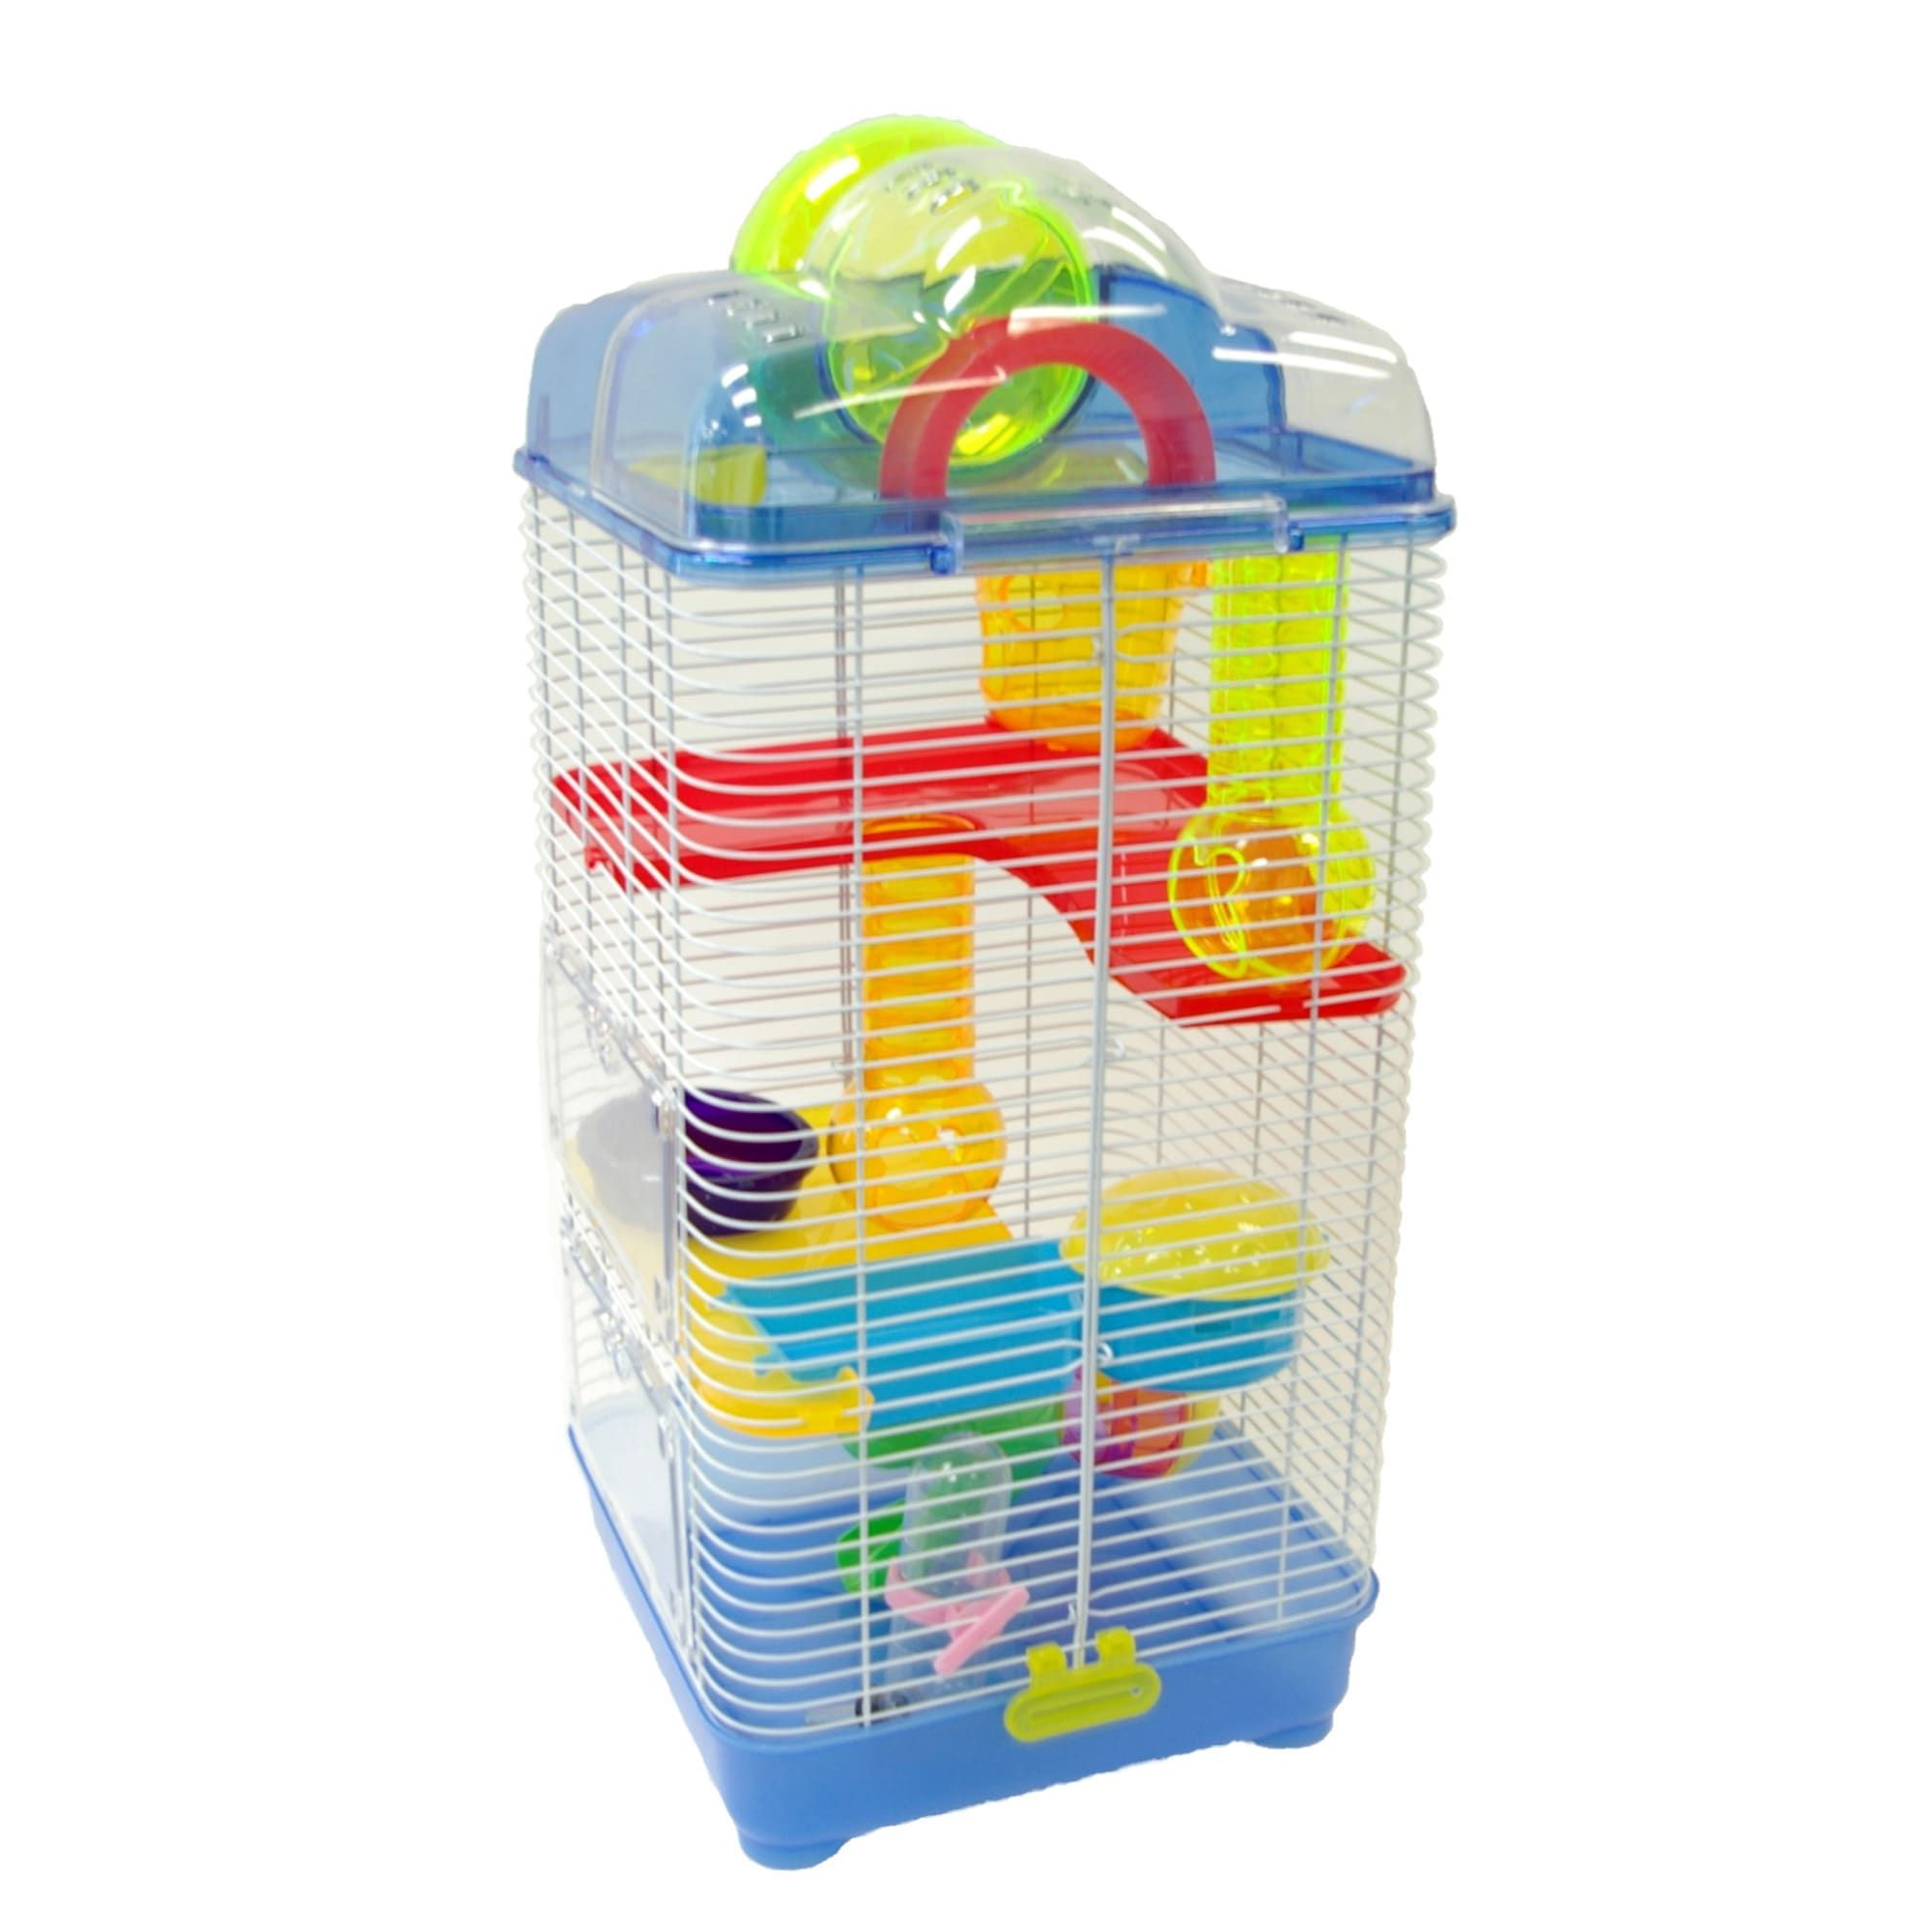 Yml 3 Level Plastic Clear Blue Hamster Cage 10 L X 10 W X 23